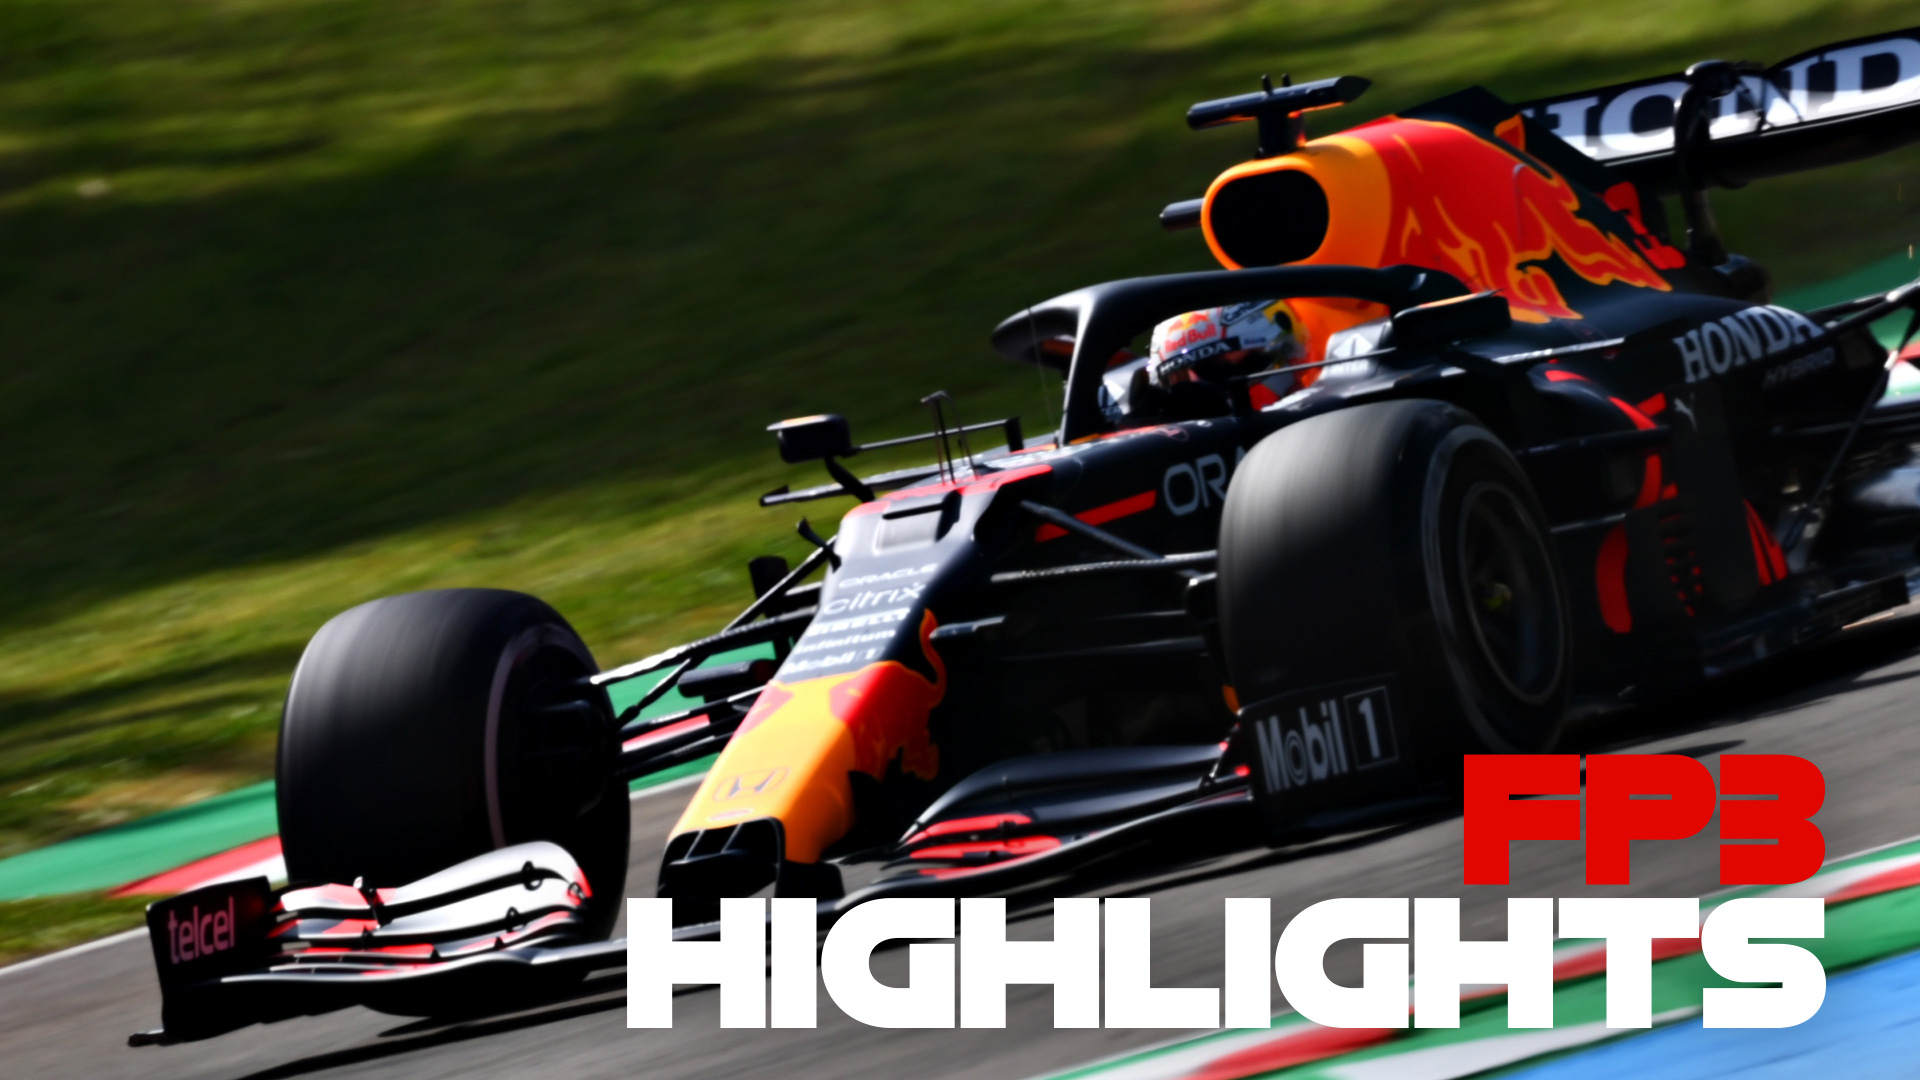 Emilia Romagna Grand Prix FP3 highlights: Watch all the action from final practice in Imola | Formula 1®